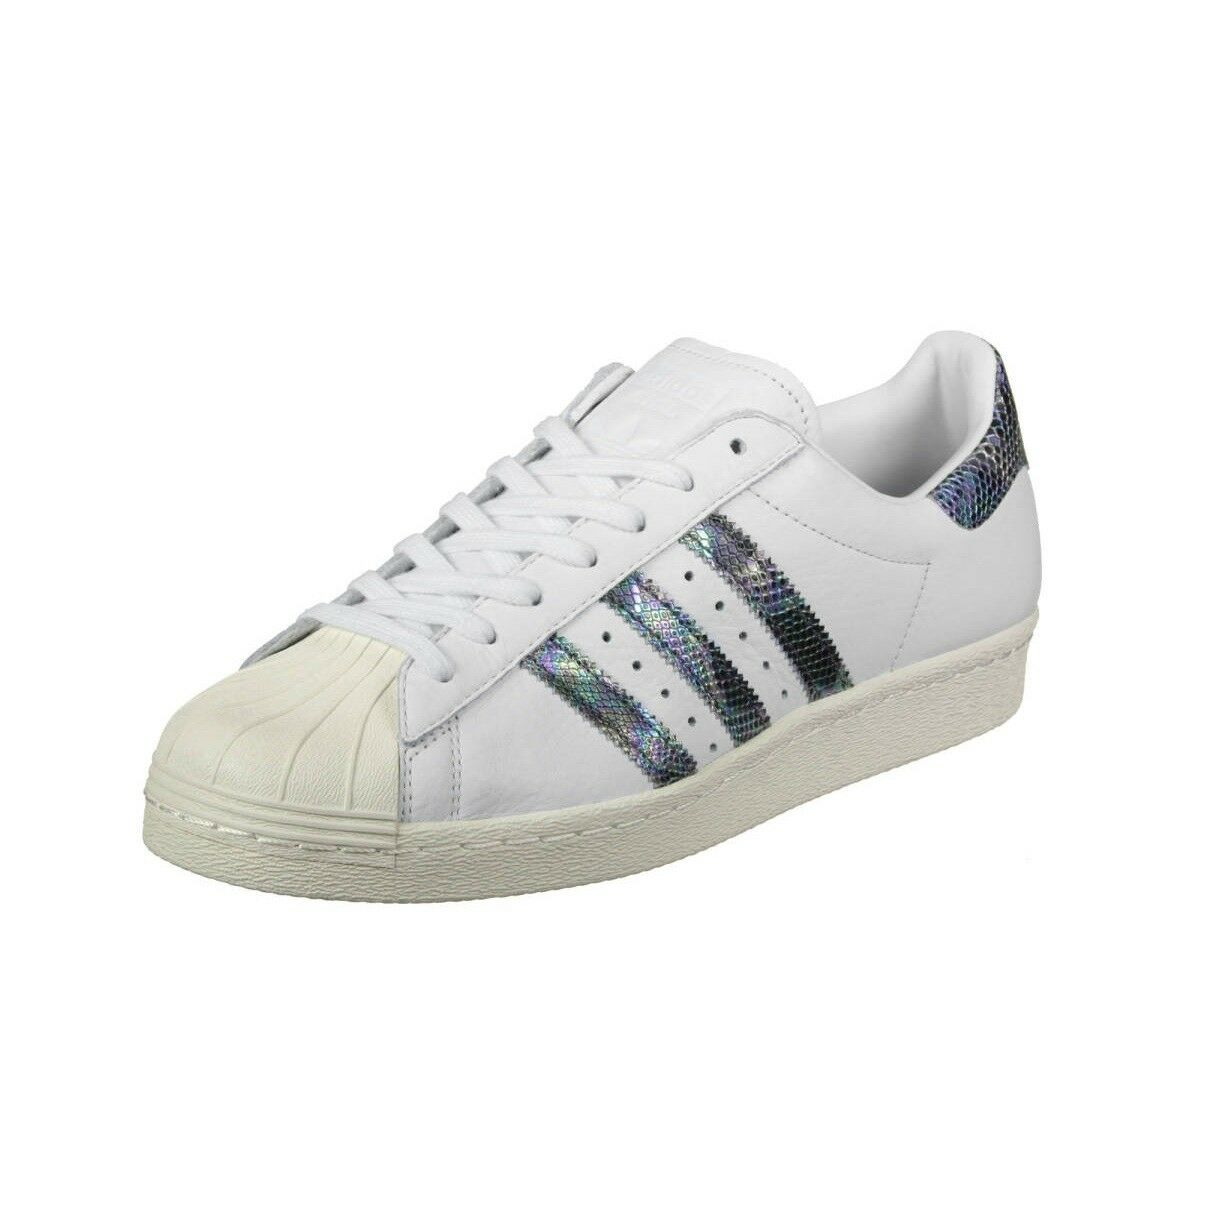 New Mens adidas Superstar 80s Athletic shoes Size 10.5 White Snakeskin MSRP  120